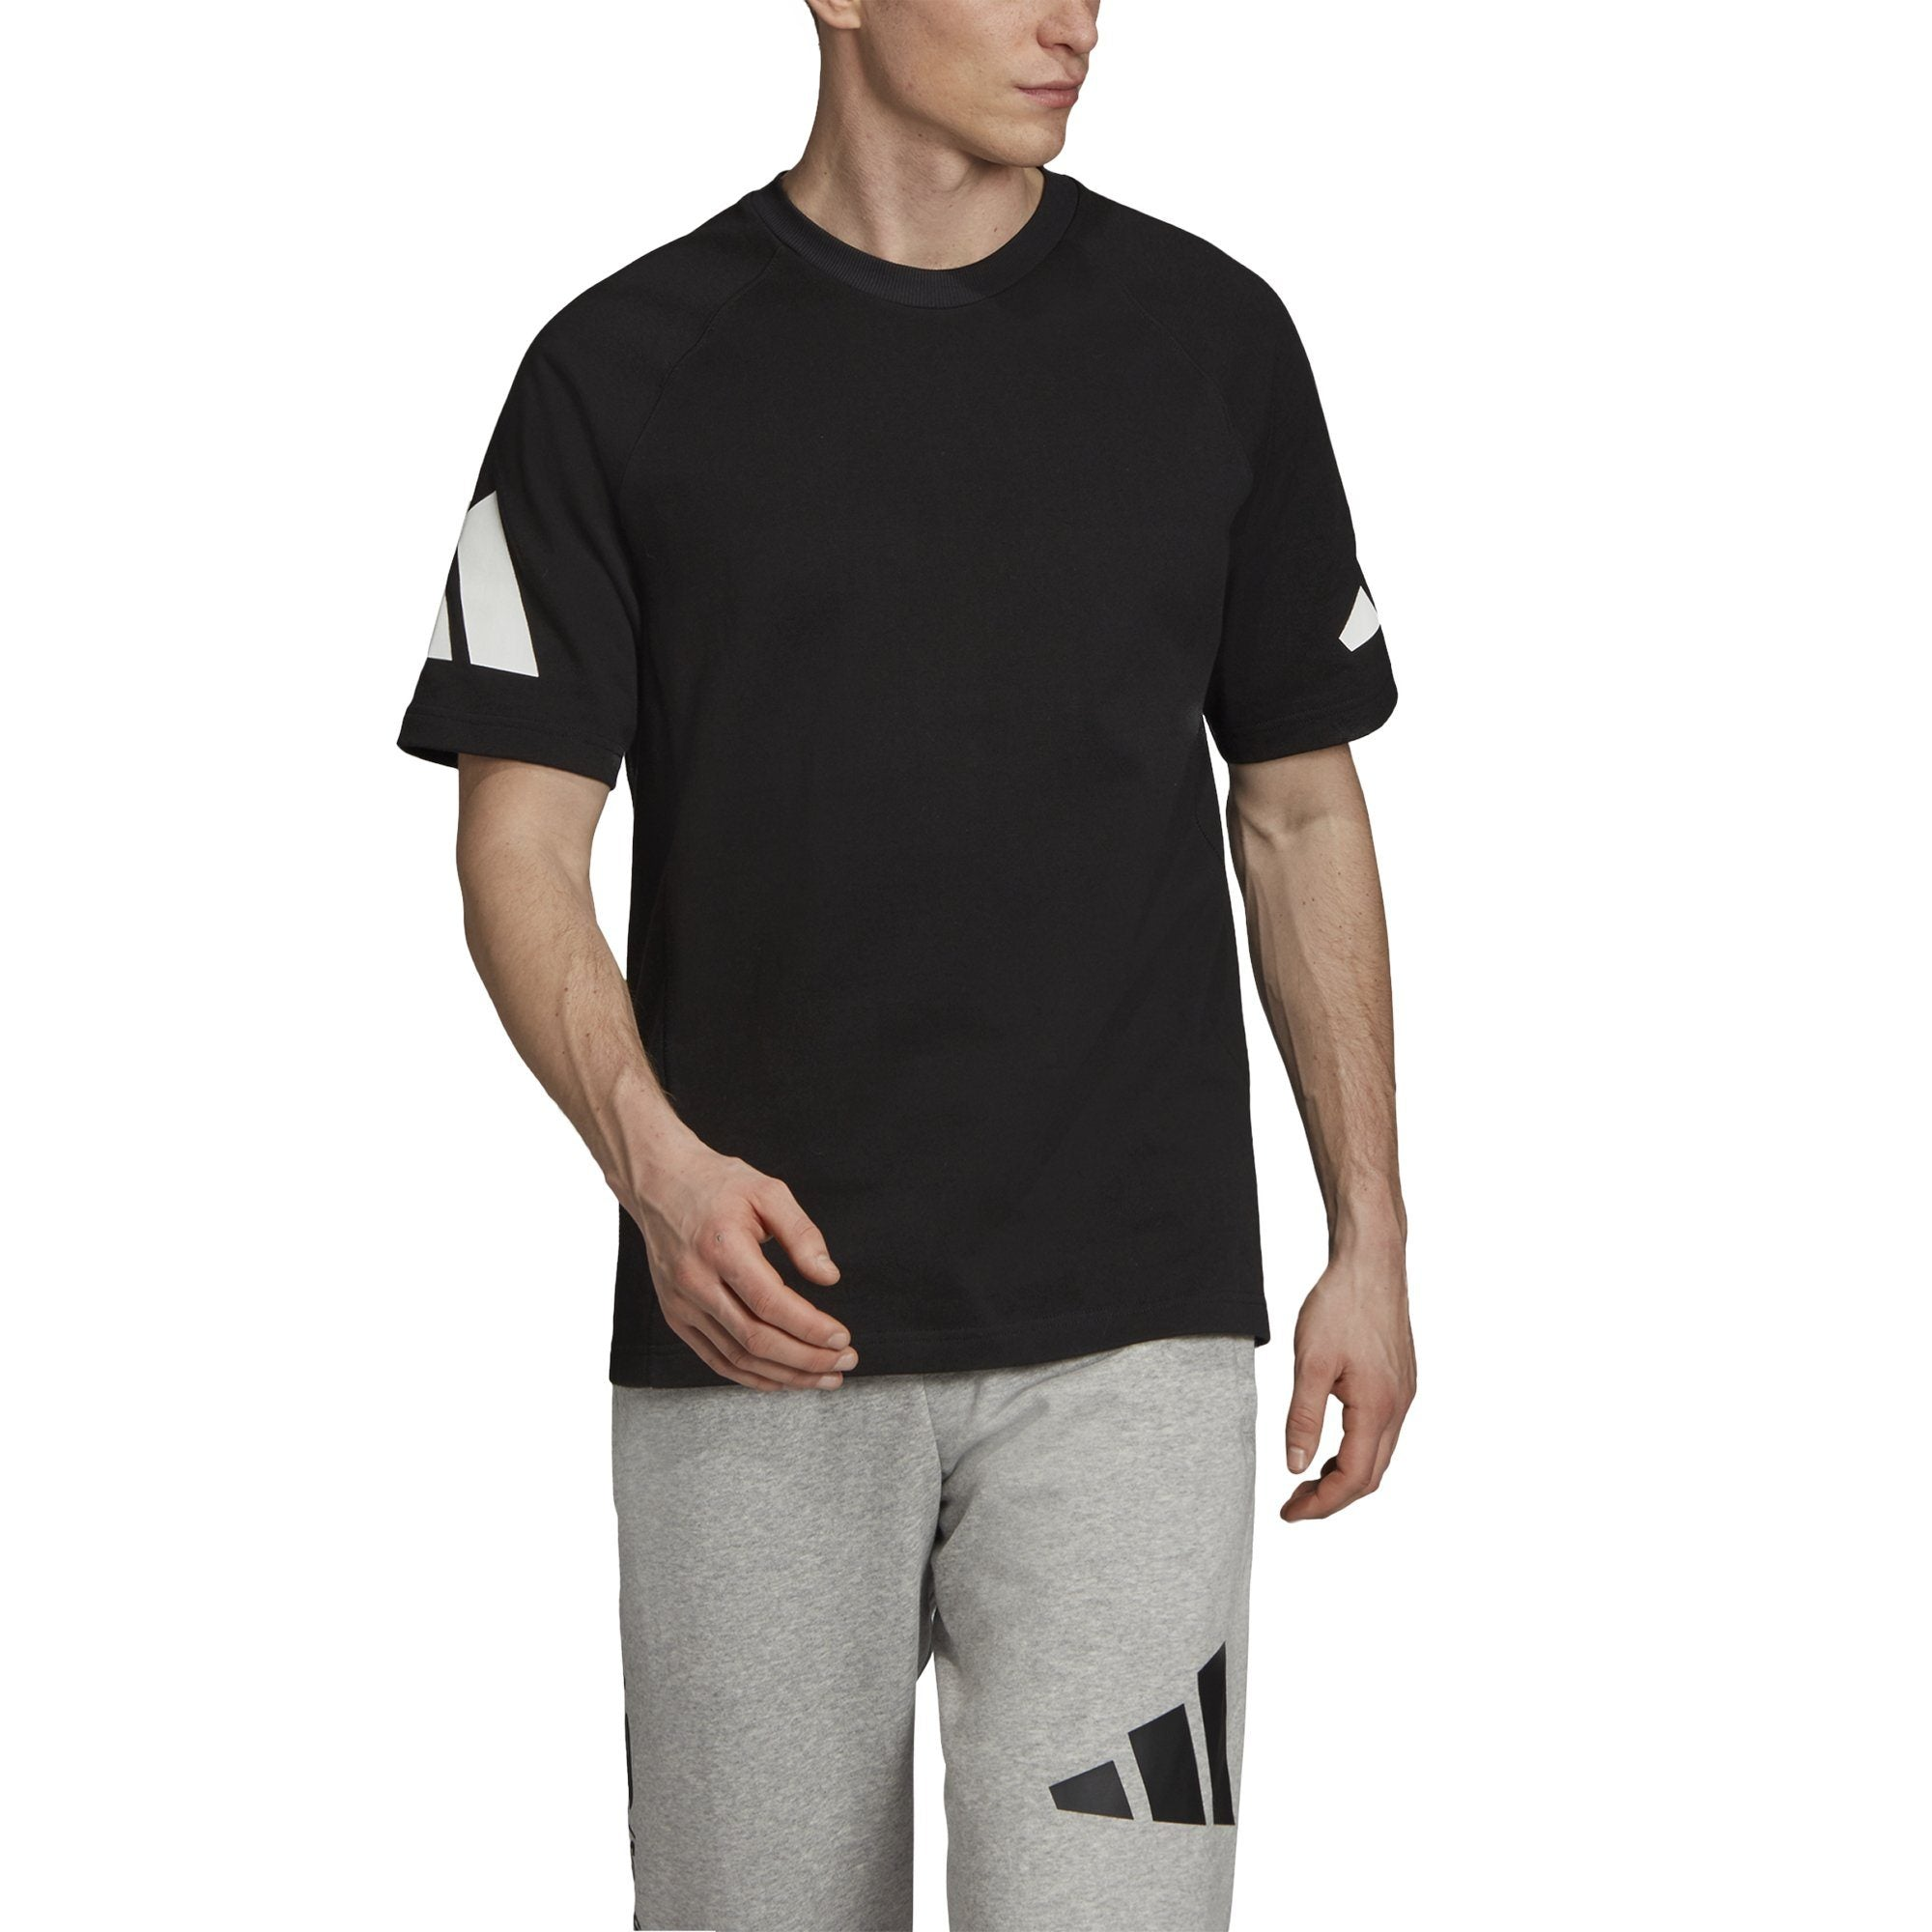 Adidas Mens adidas Athletics Pack Heavy Tee - black SP-APPARELTEES-MENS Adidas